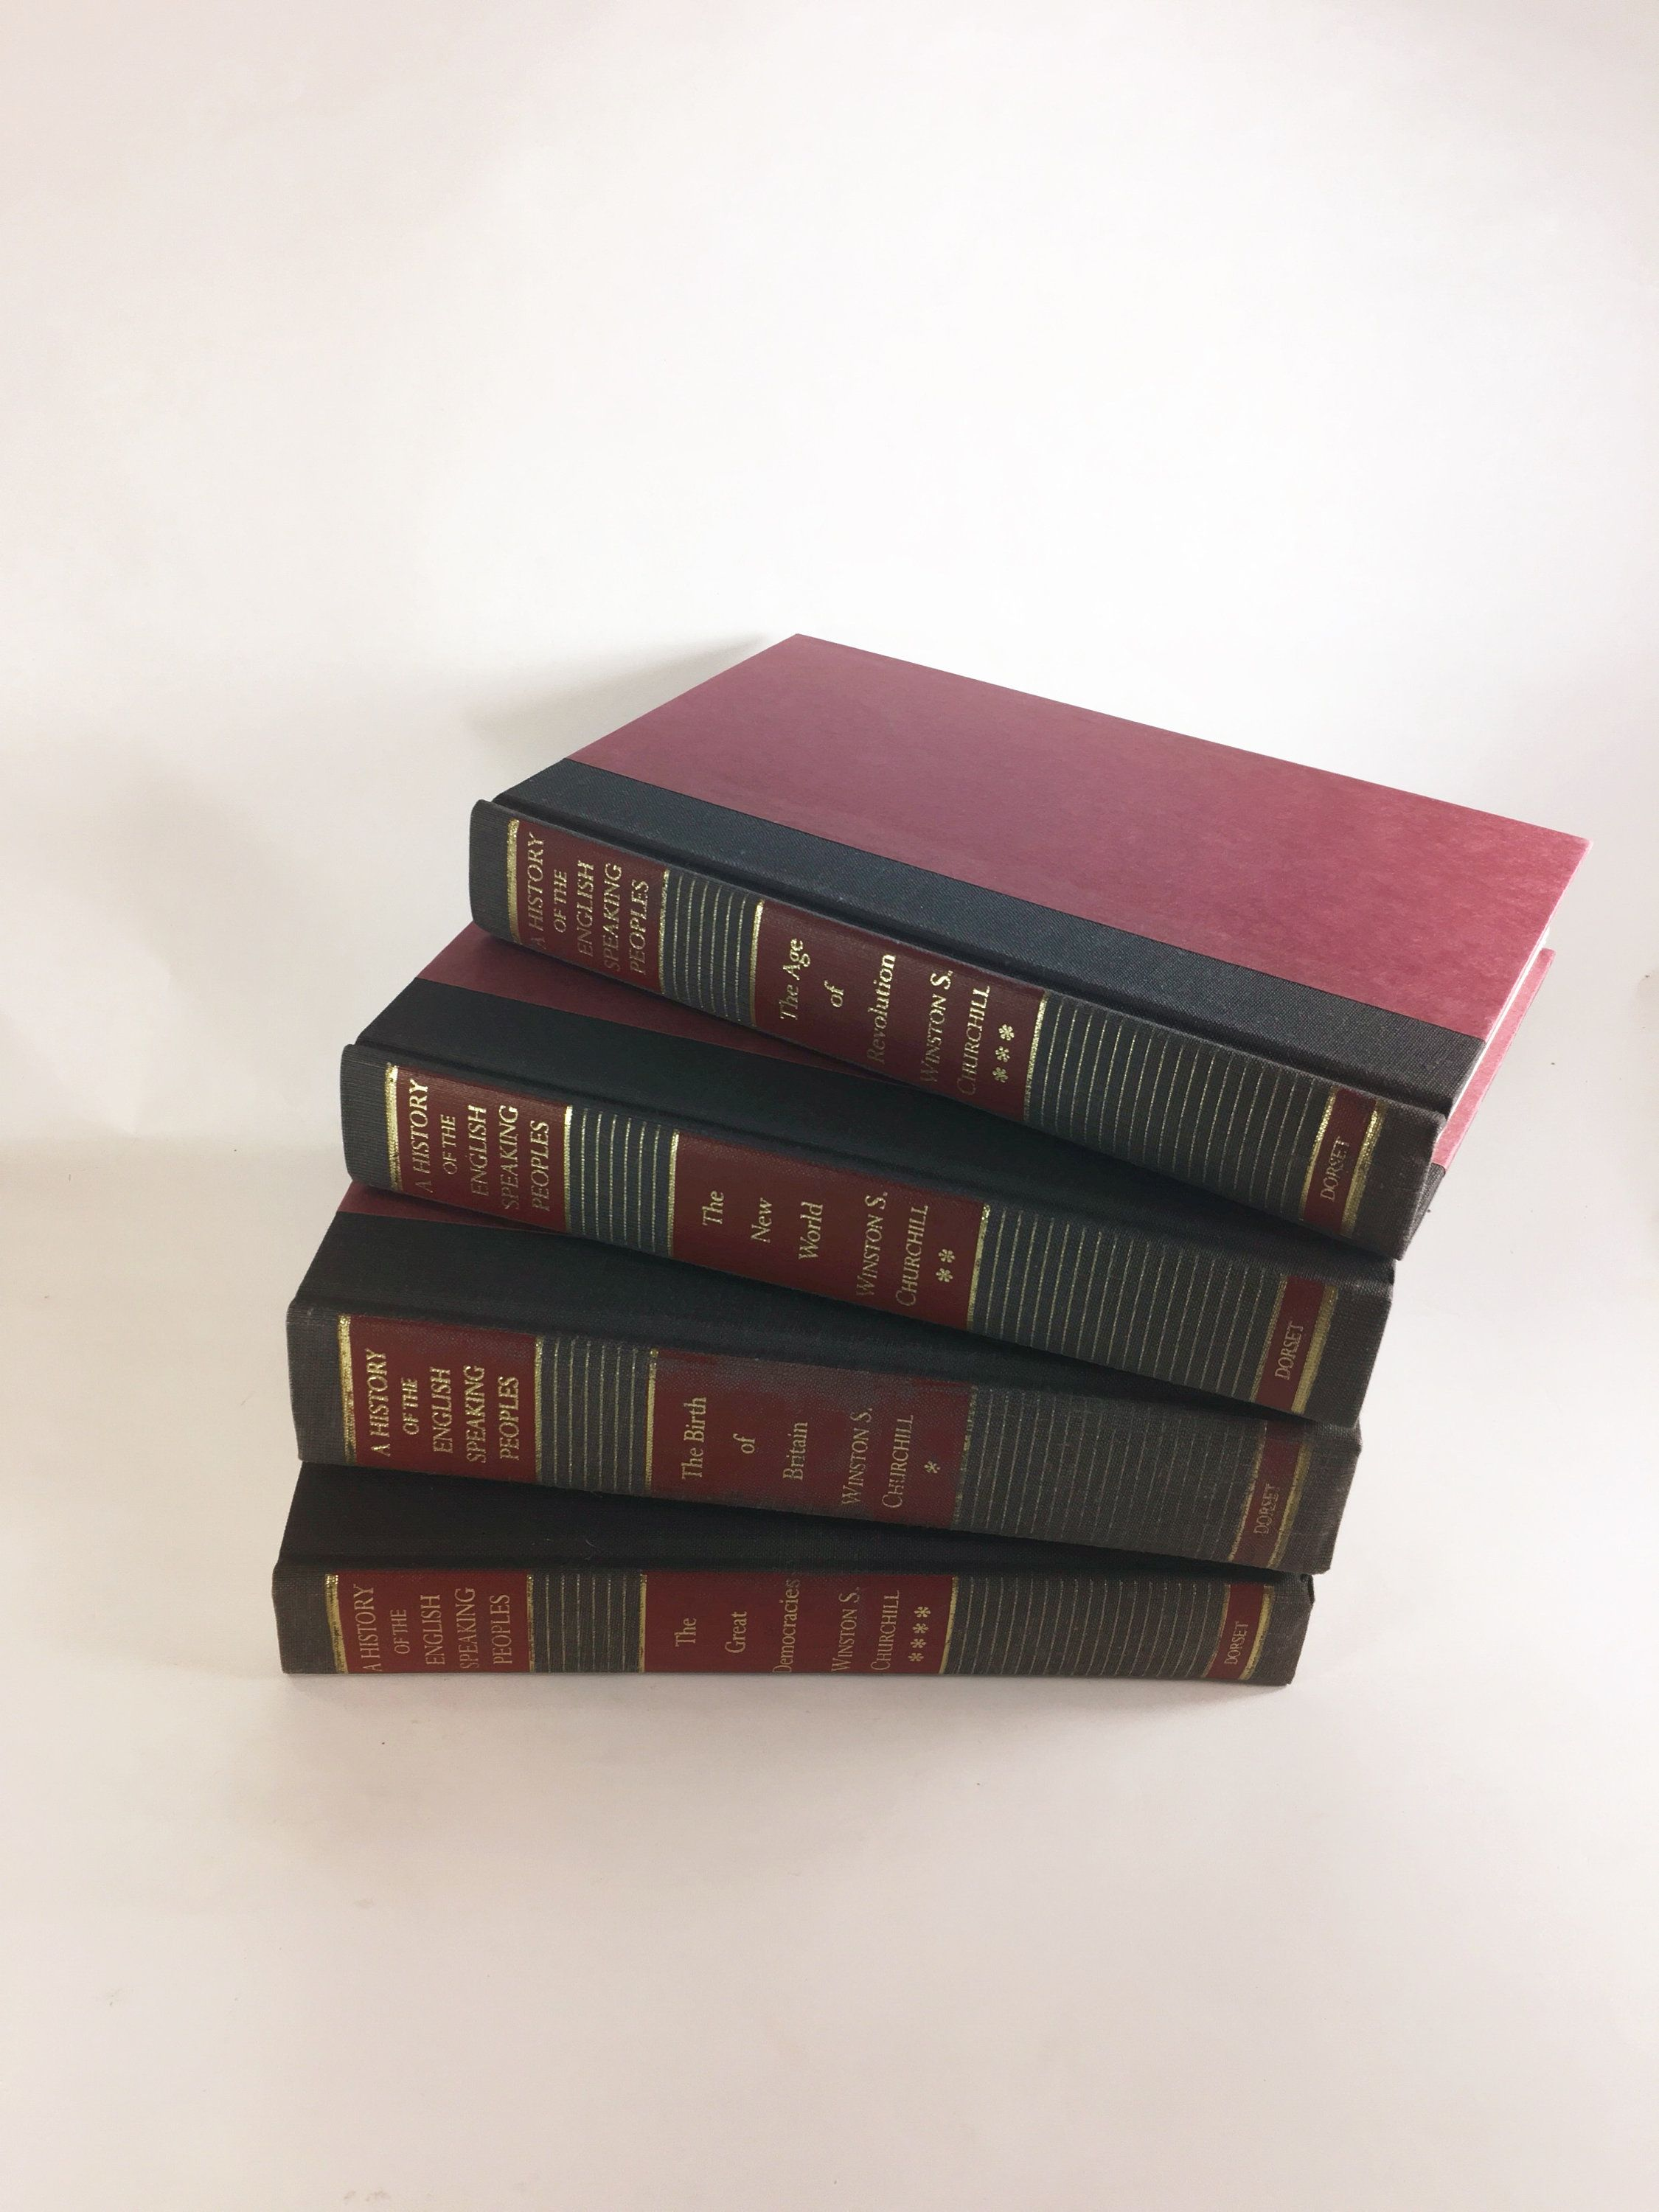 Winston Churchill Four Volume Vintage Book Set Circa 1956 History Of The English Speaking Peoples Britain Revolution Gr Vintage Book Set Vintage Book Book Set